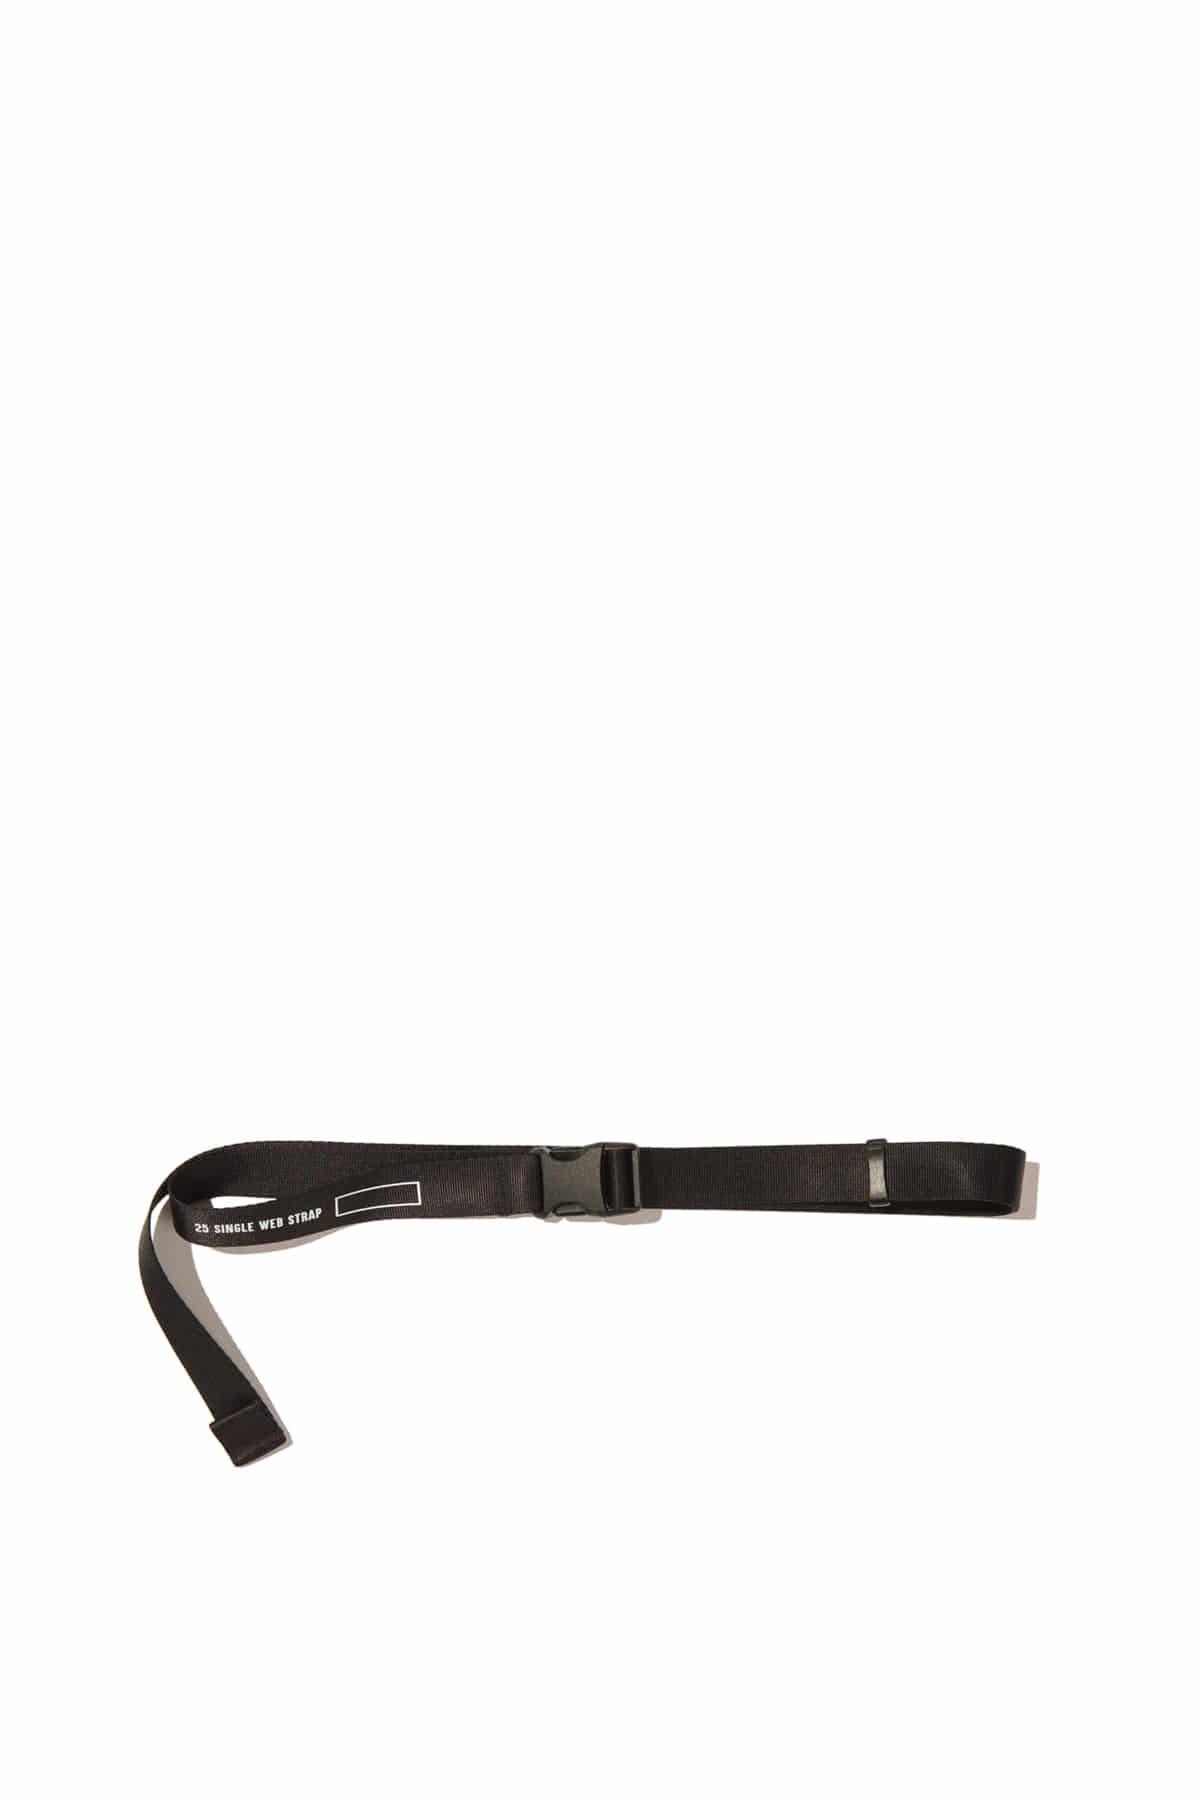 Blankof : LLG 01 SSR 25 Single Web Strap (Black)